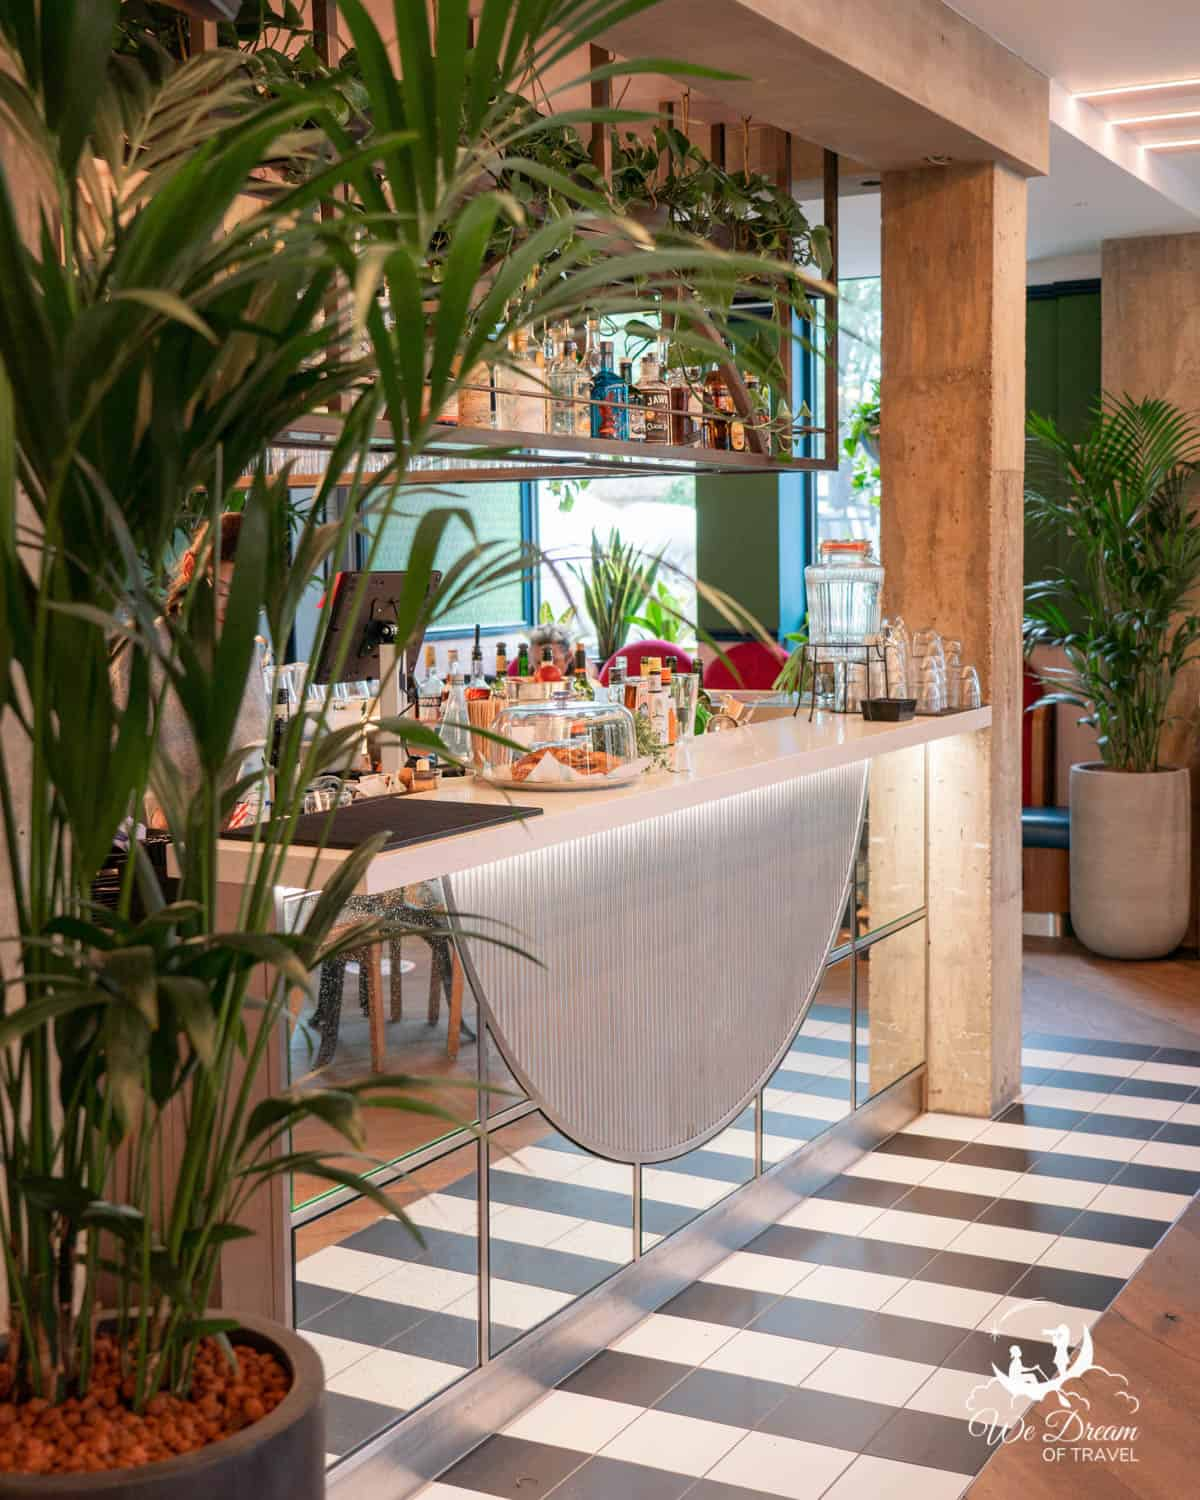 The bar surrounded by plants at Powerplant restaurant in Camden